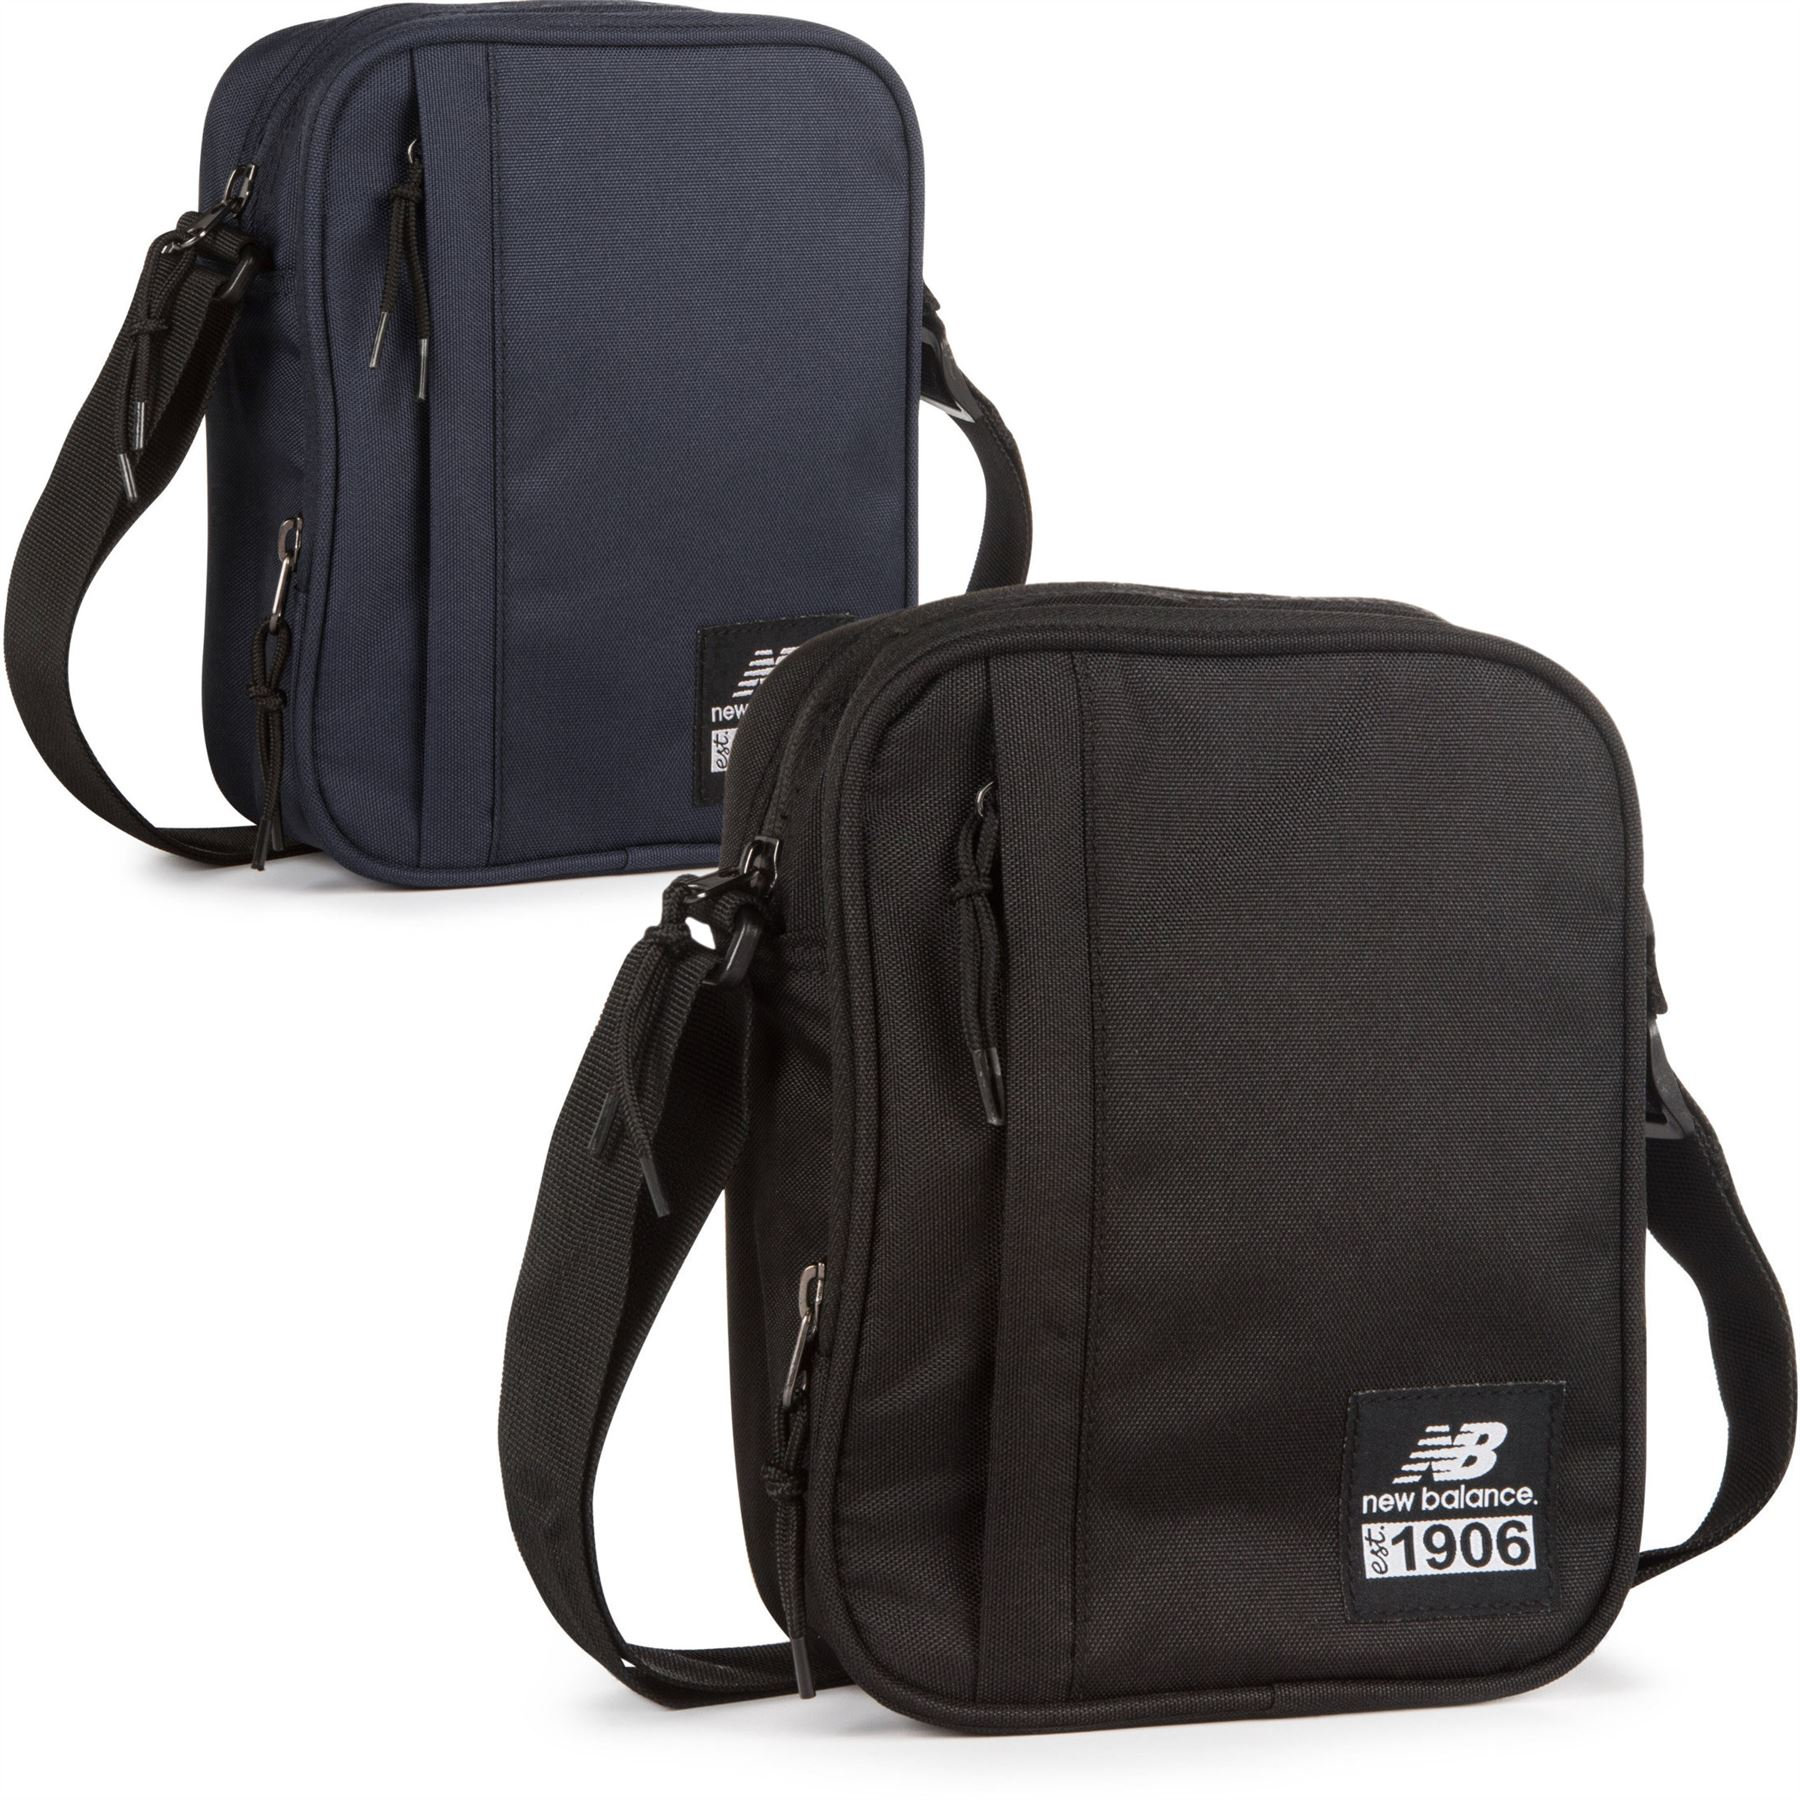 9f6e54703fda4 new balance bag Blue sale > OFF65% Discounts